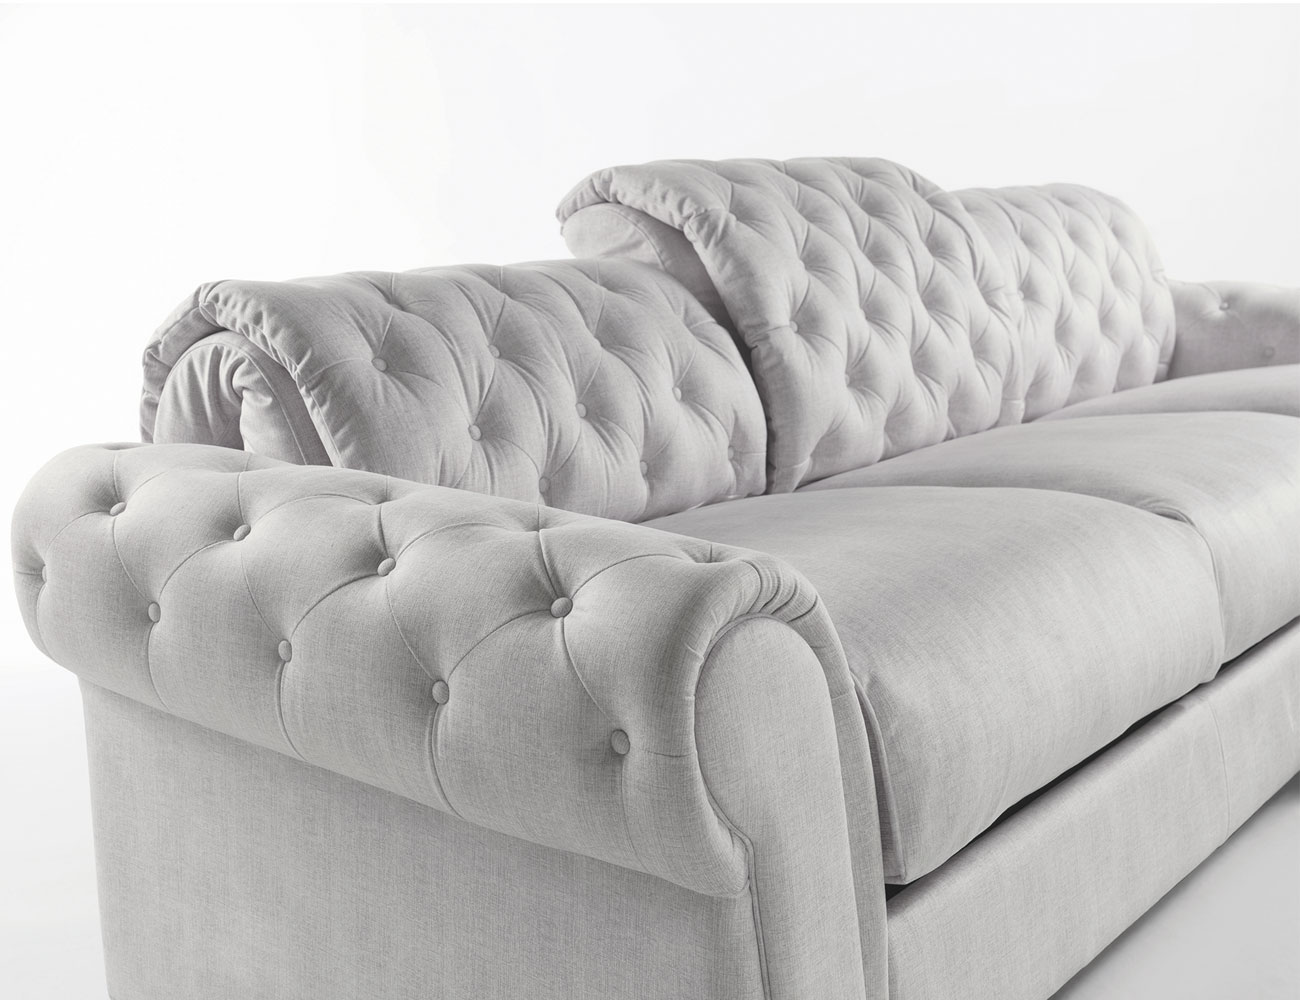 Sofa chaiselongue gran lujo decorativo capitone blanco tela 110